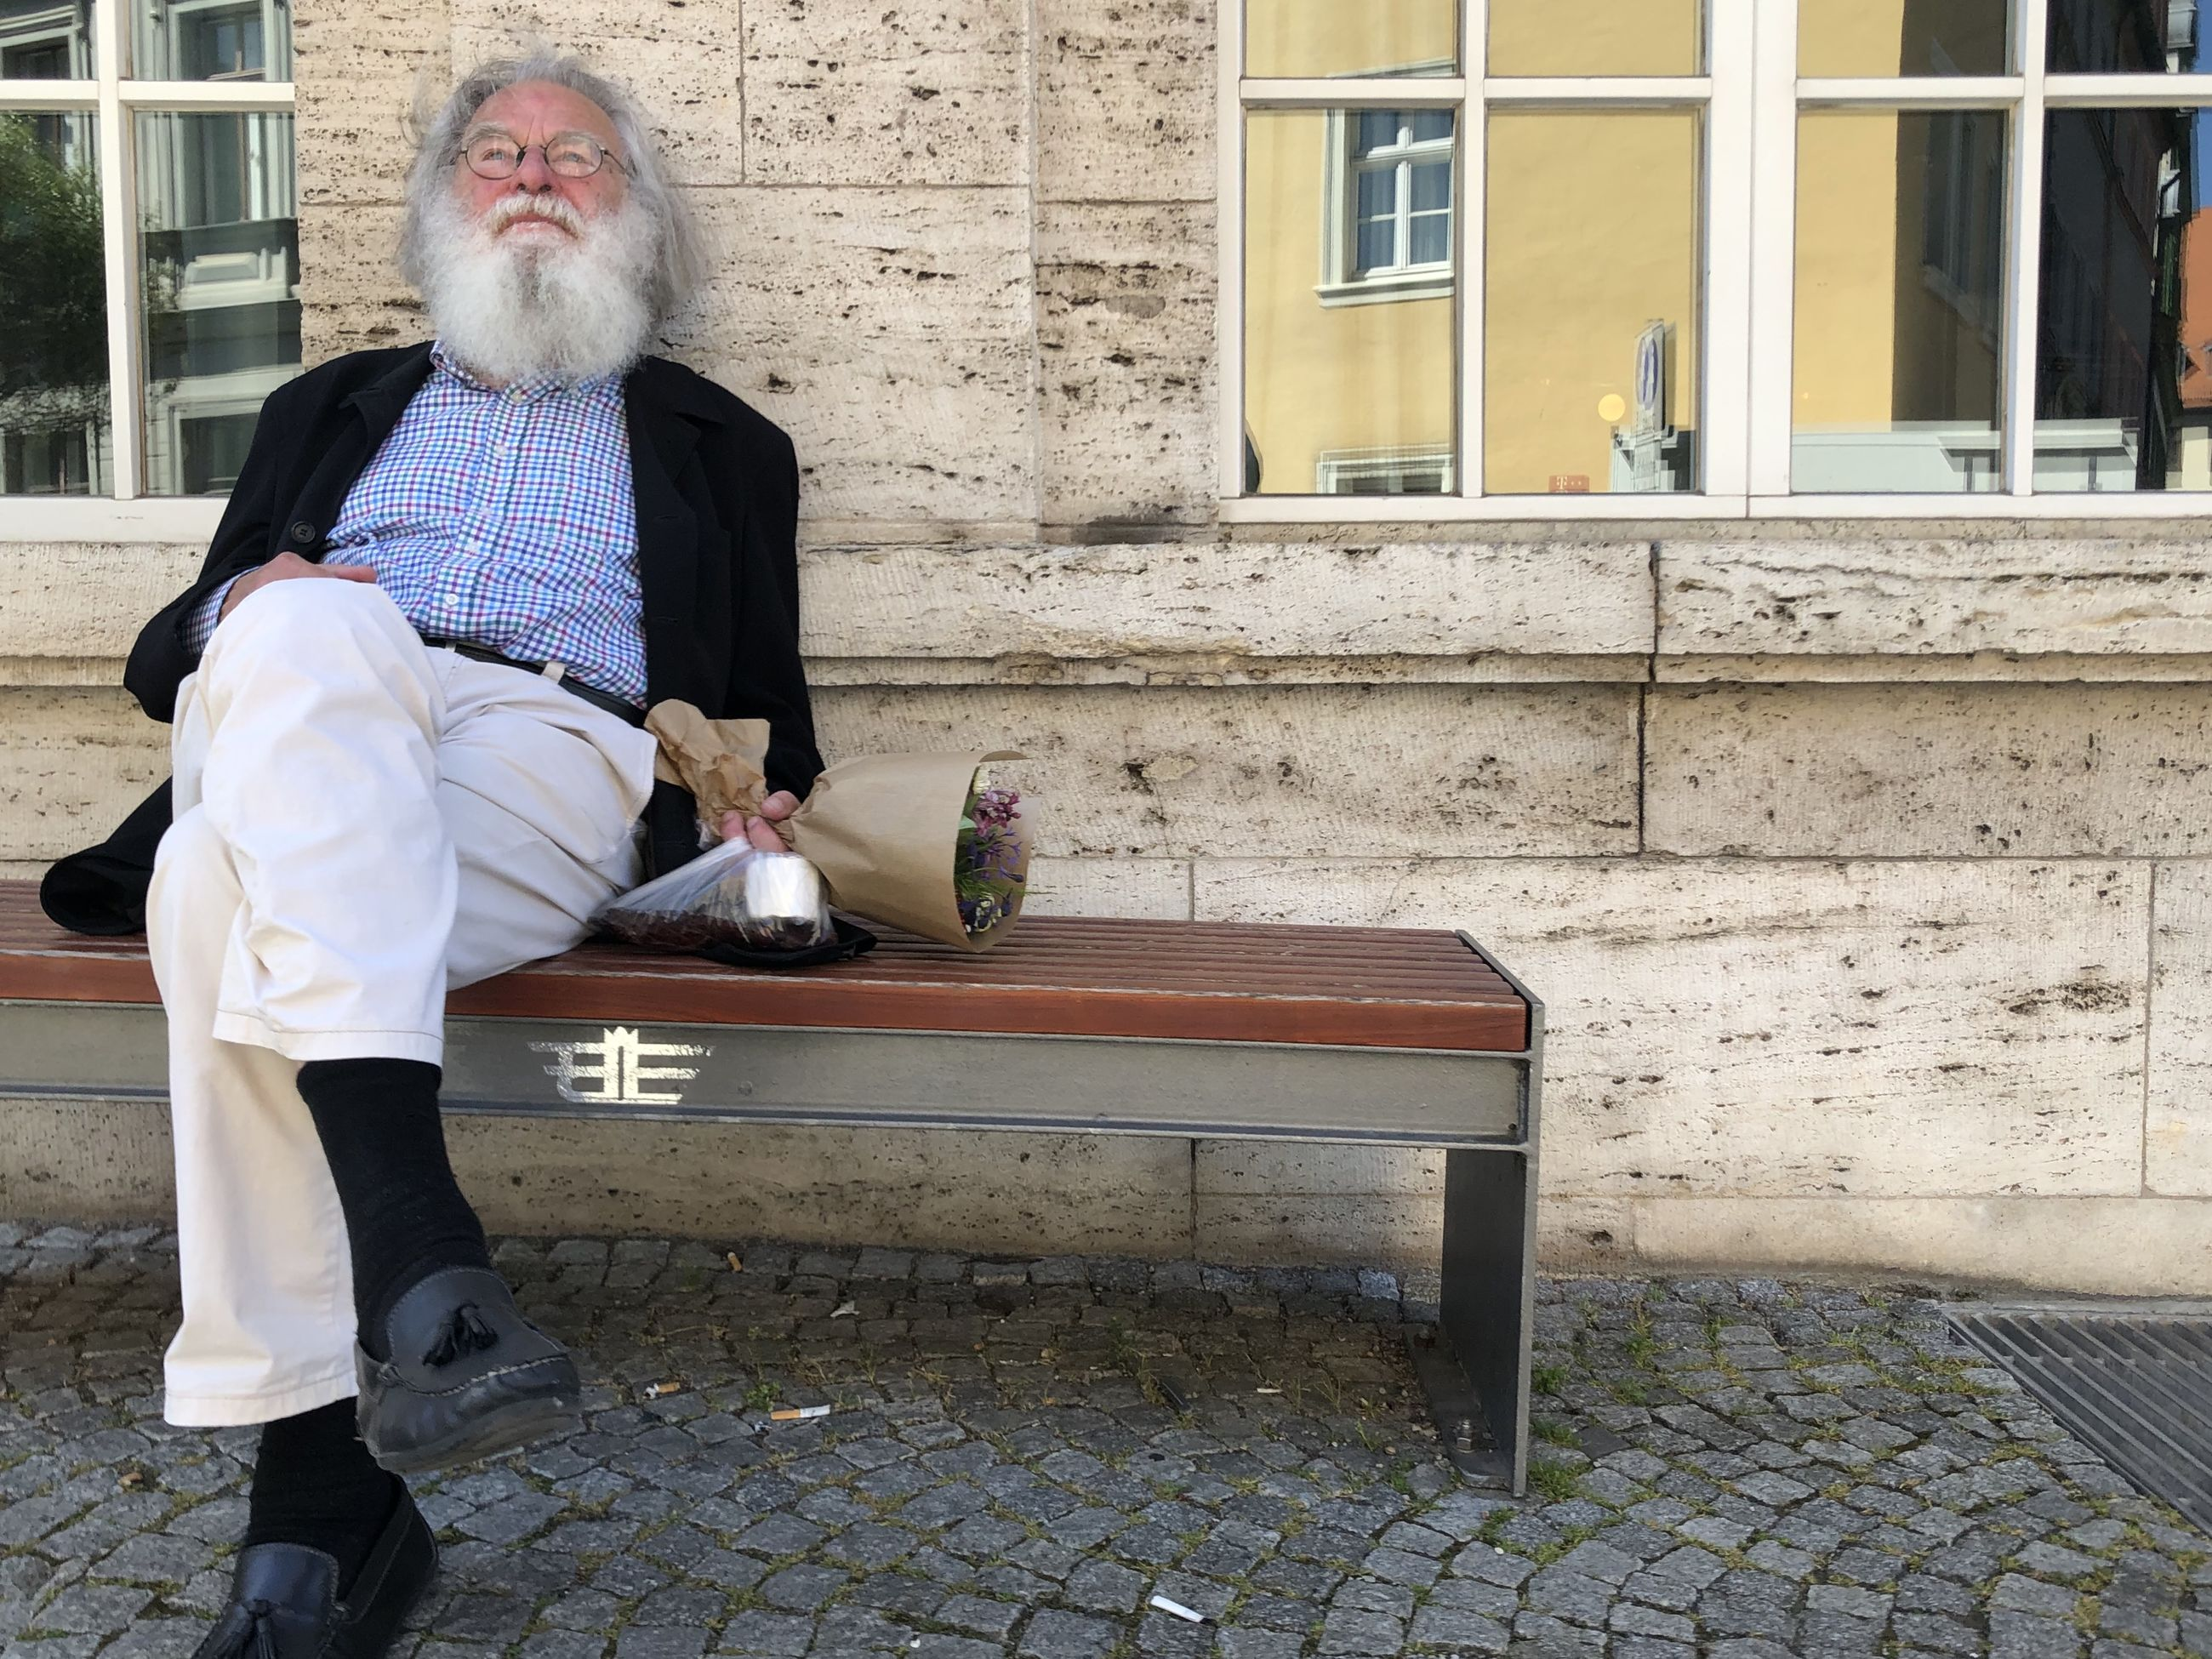 senior adult, adult, one person, men, architecture, seniors, full length, bench, seat, sitting, building exterior, lifestyles, facial hair, built structure, city, women, gray hair, person, clothing, beard, retirement, leisure activity, day, casual clothing, furniture, portrait, street, front view, outdoors, footpath, emotion, relaxation